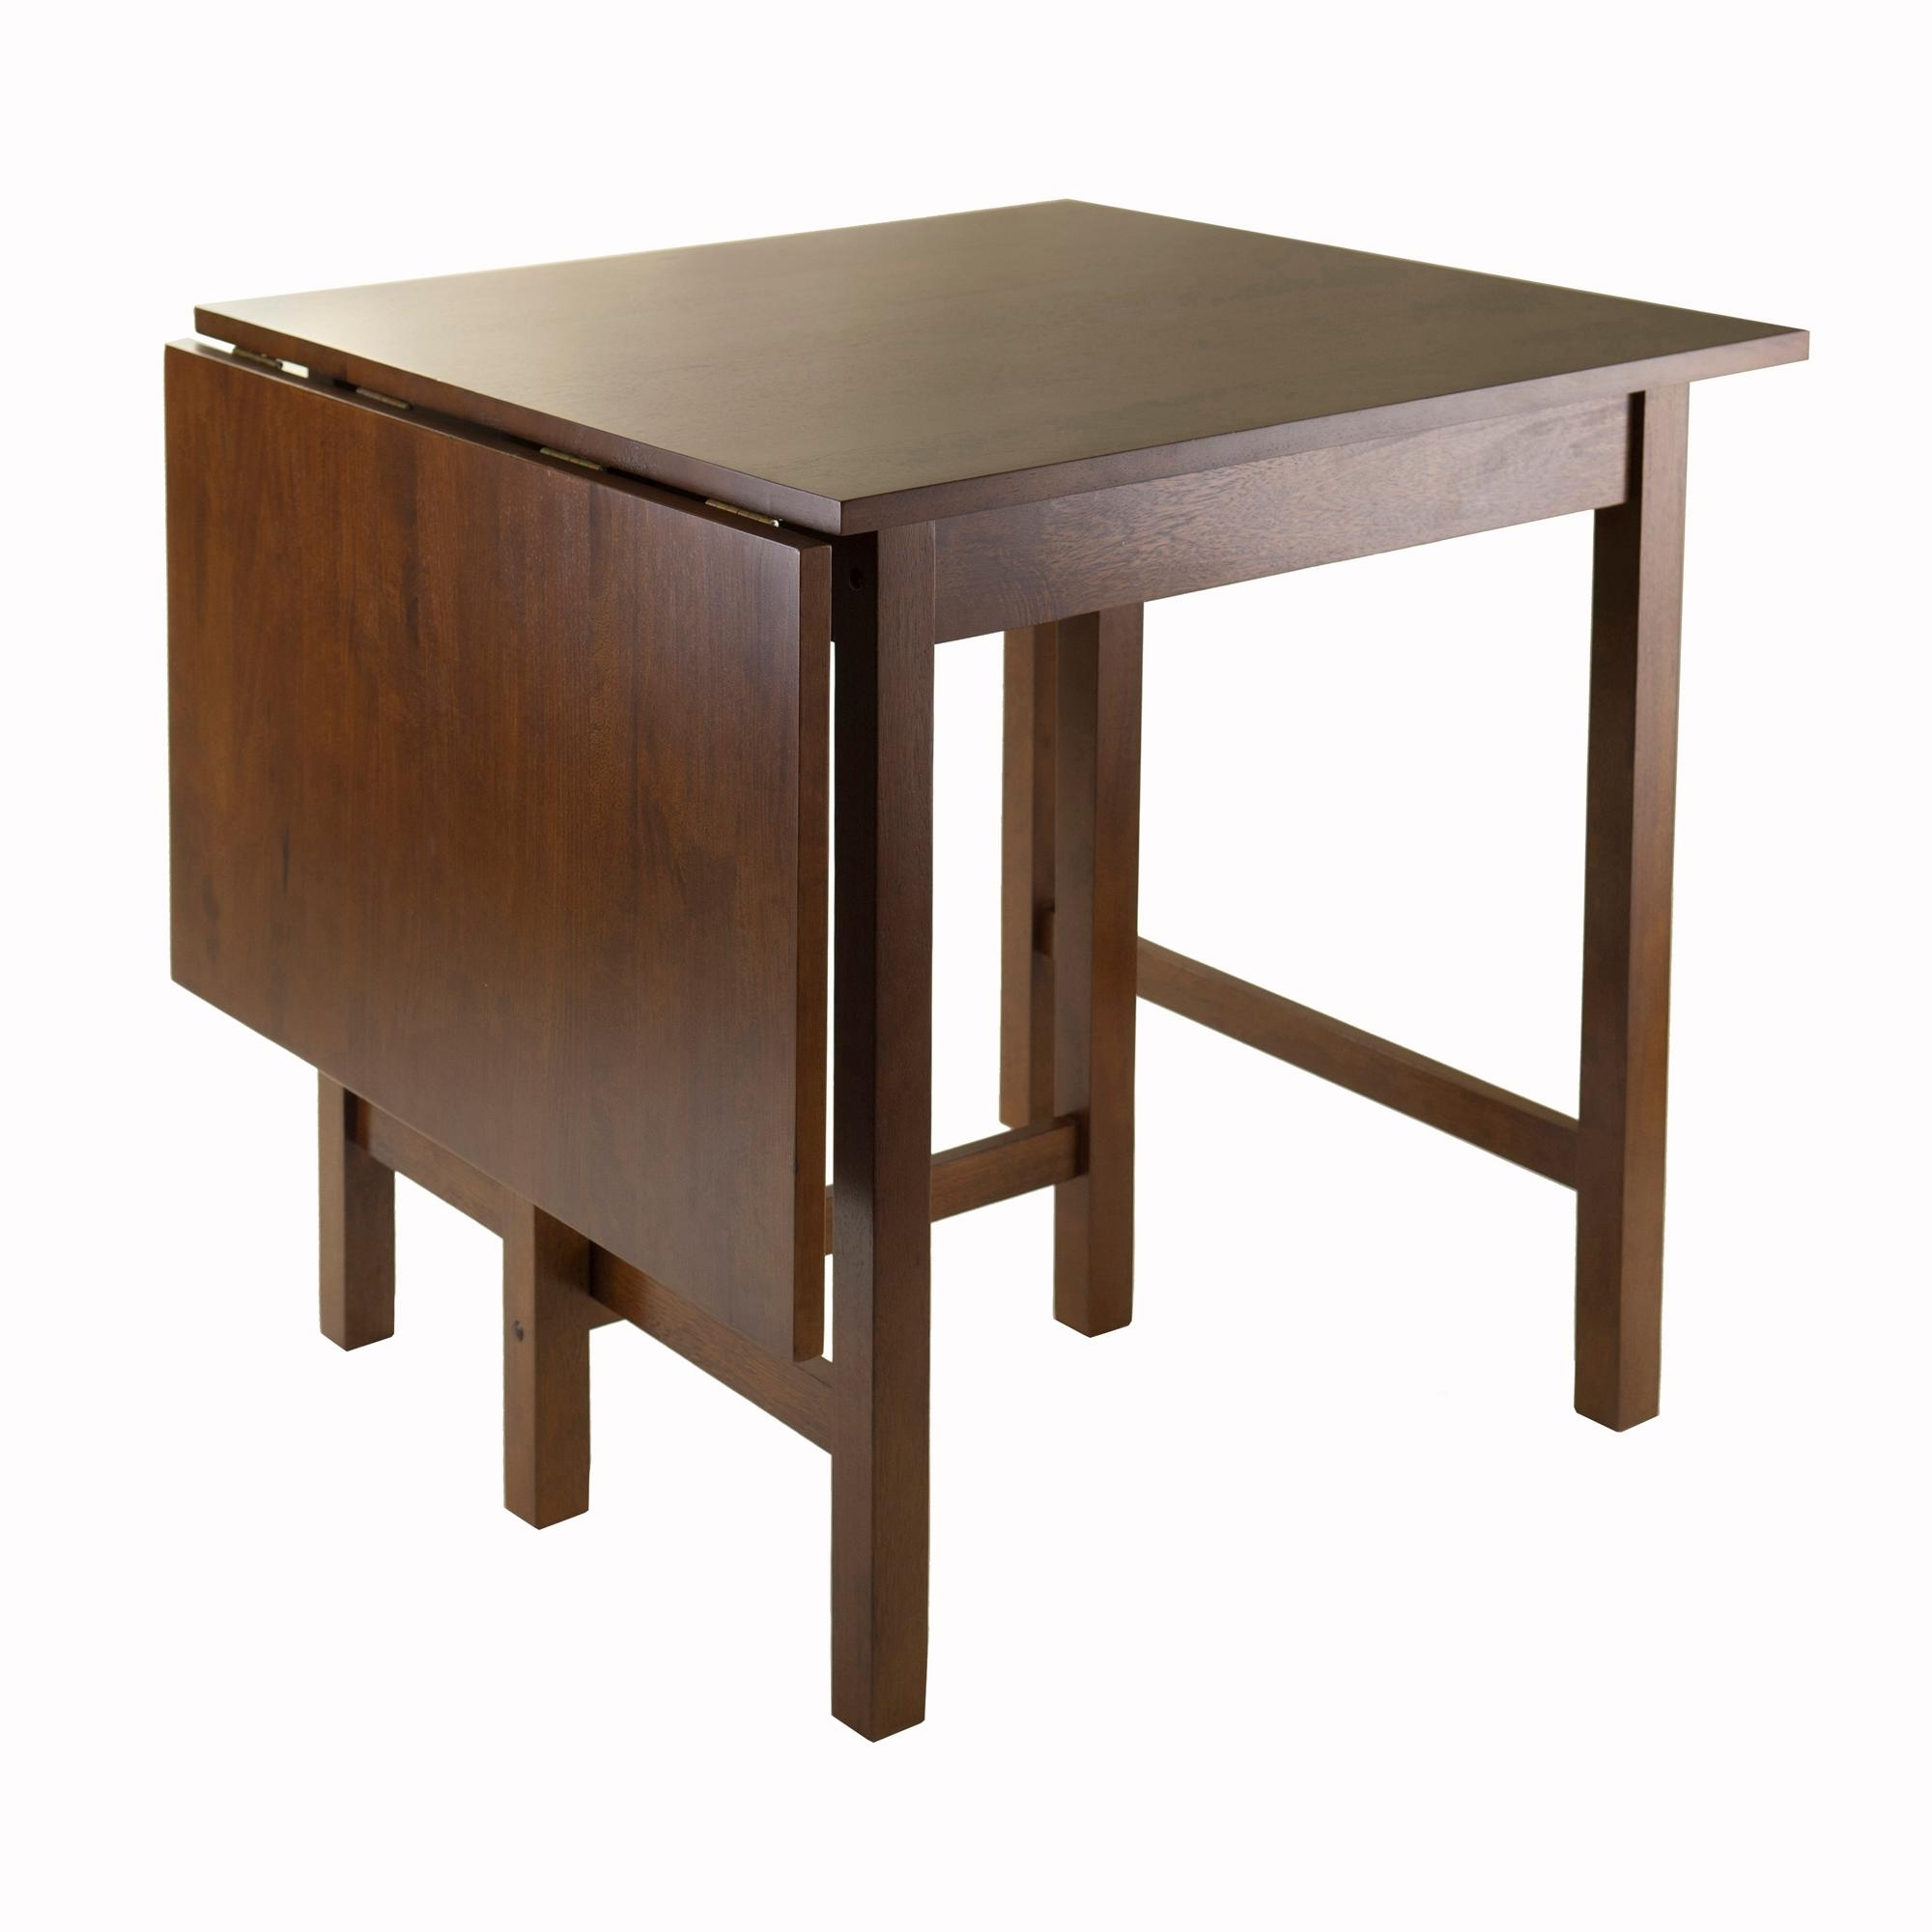 Well Liked Winsome Wood Lynden Drop Leaf Dining Table: Amazon (View 25 of 25)